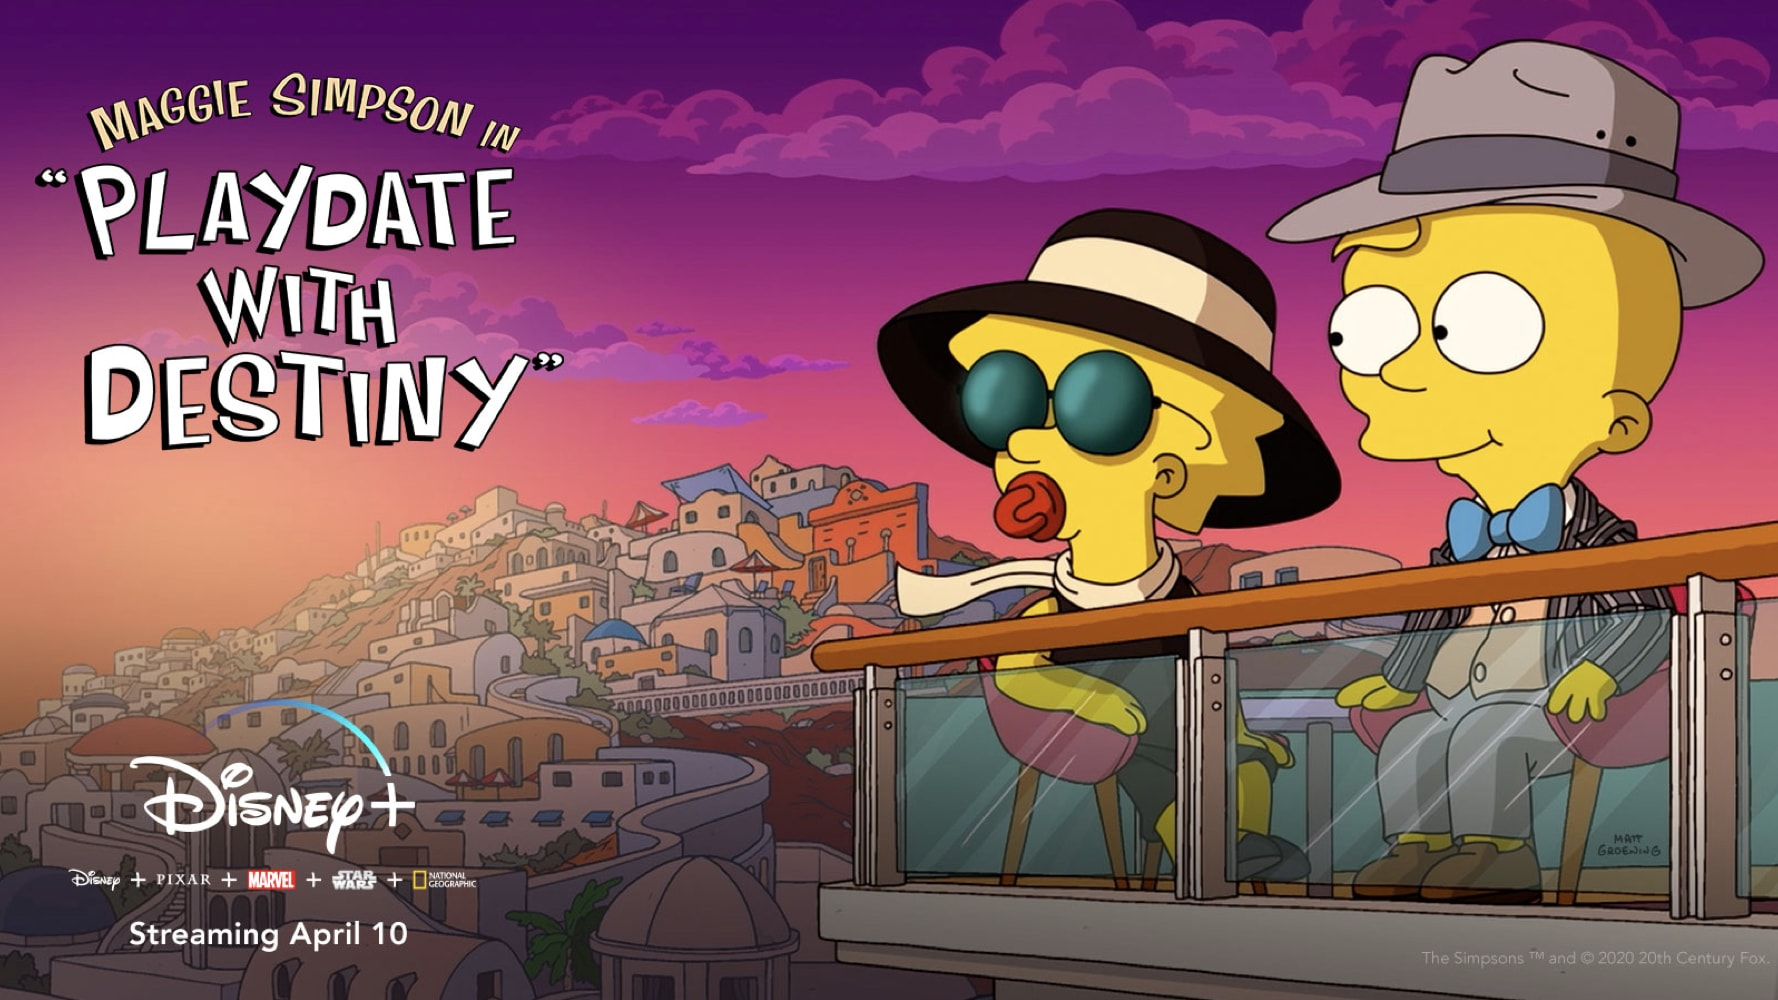 The Simpsons Animated Short Film Maggie Simpson In Playdate With Destiny Streams Tomorrow On Disney Dtci Media